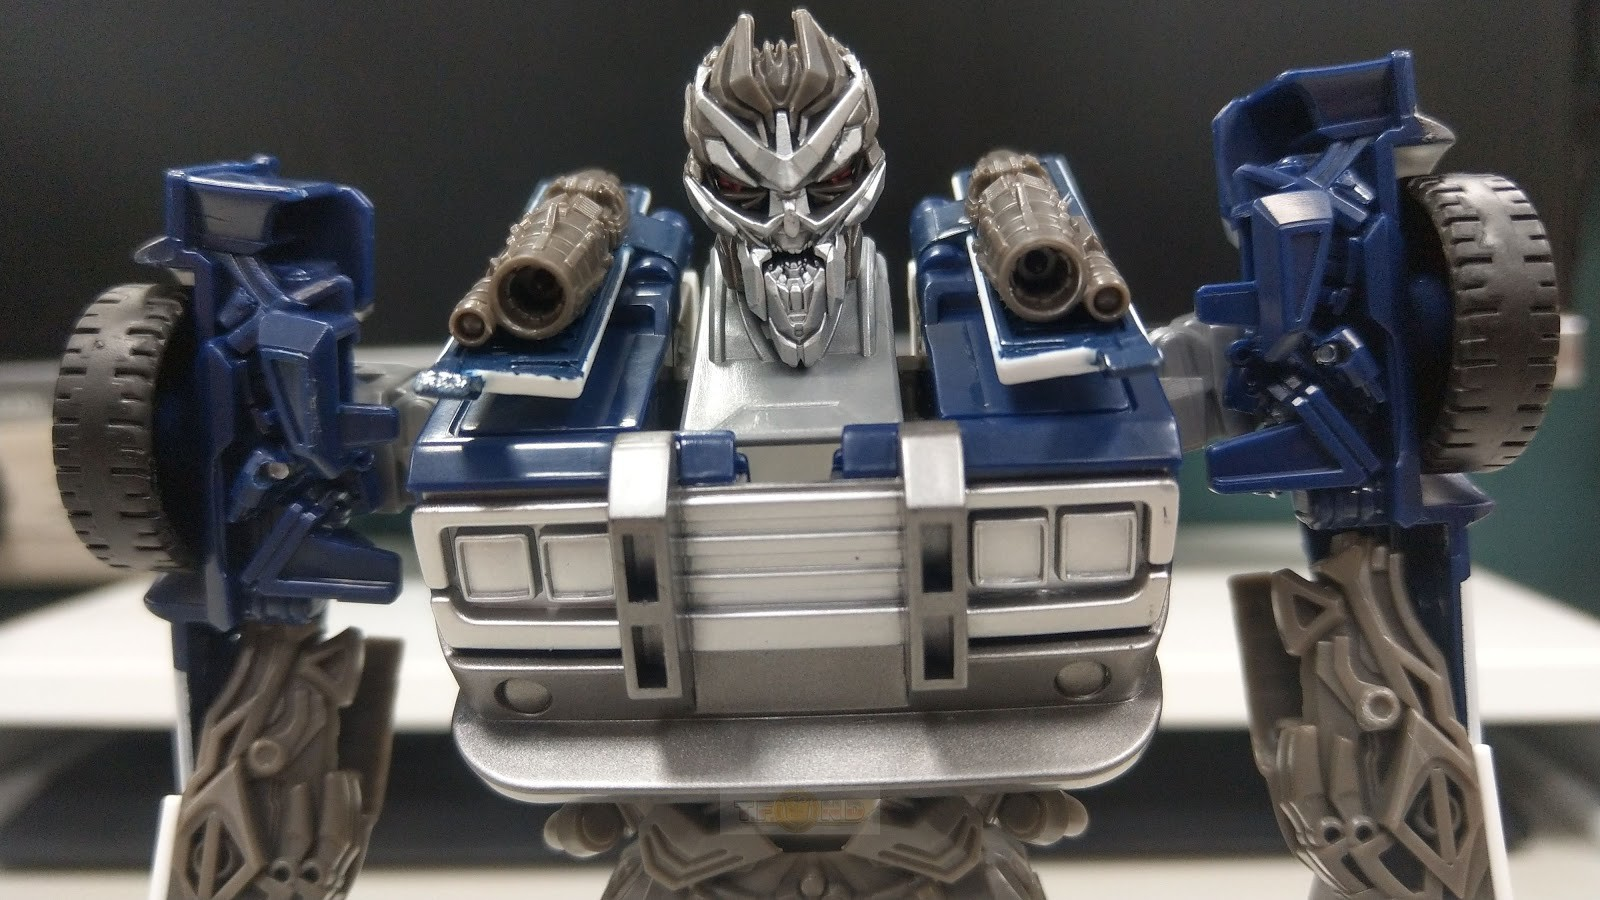 18e58e5552c Transformers News: Transformers: Bumblebee Energon Igniters Nitro Series  In-Hand Pictures and Demo